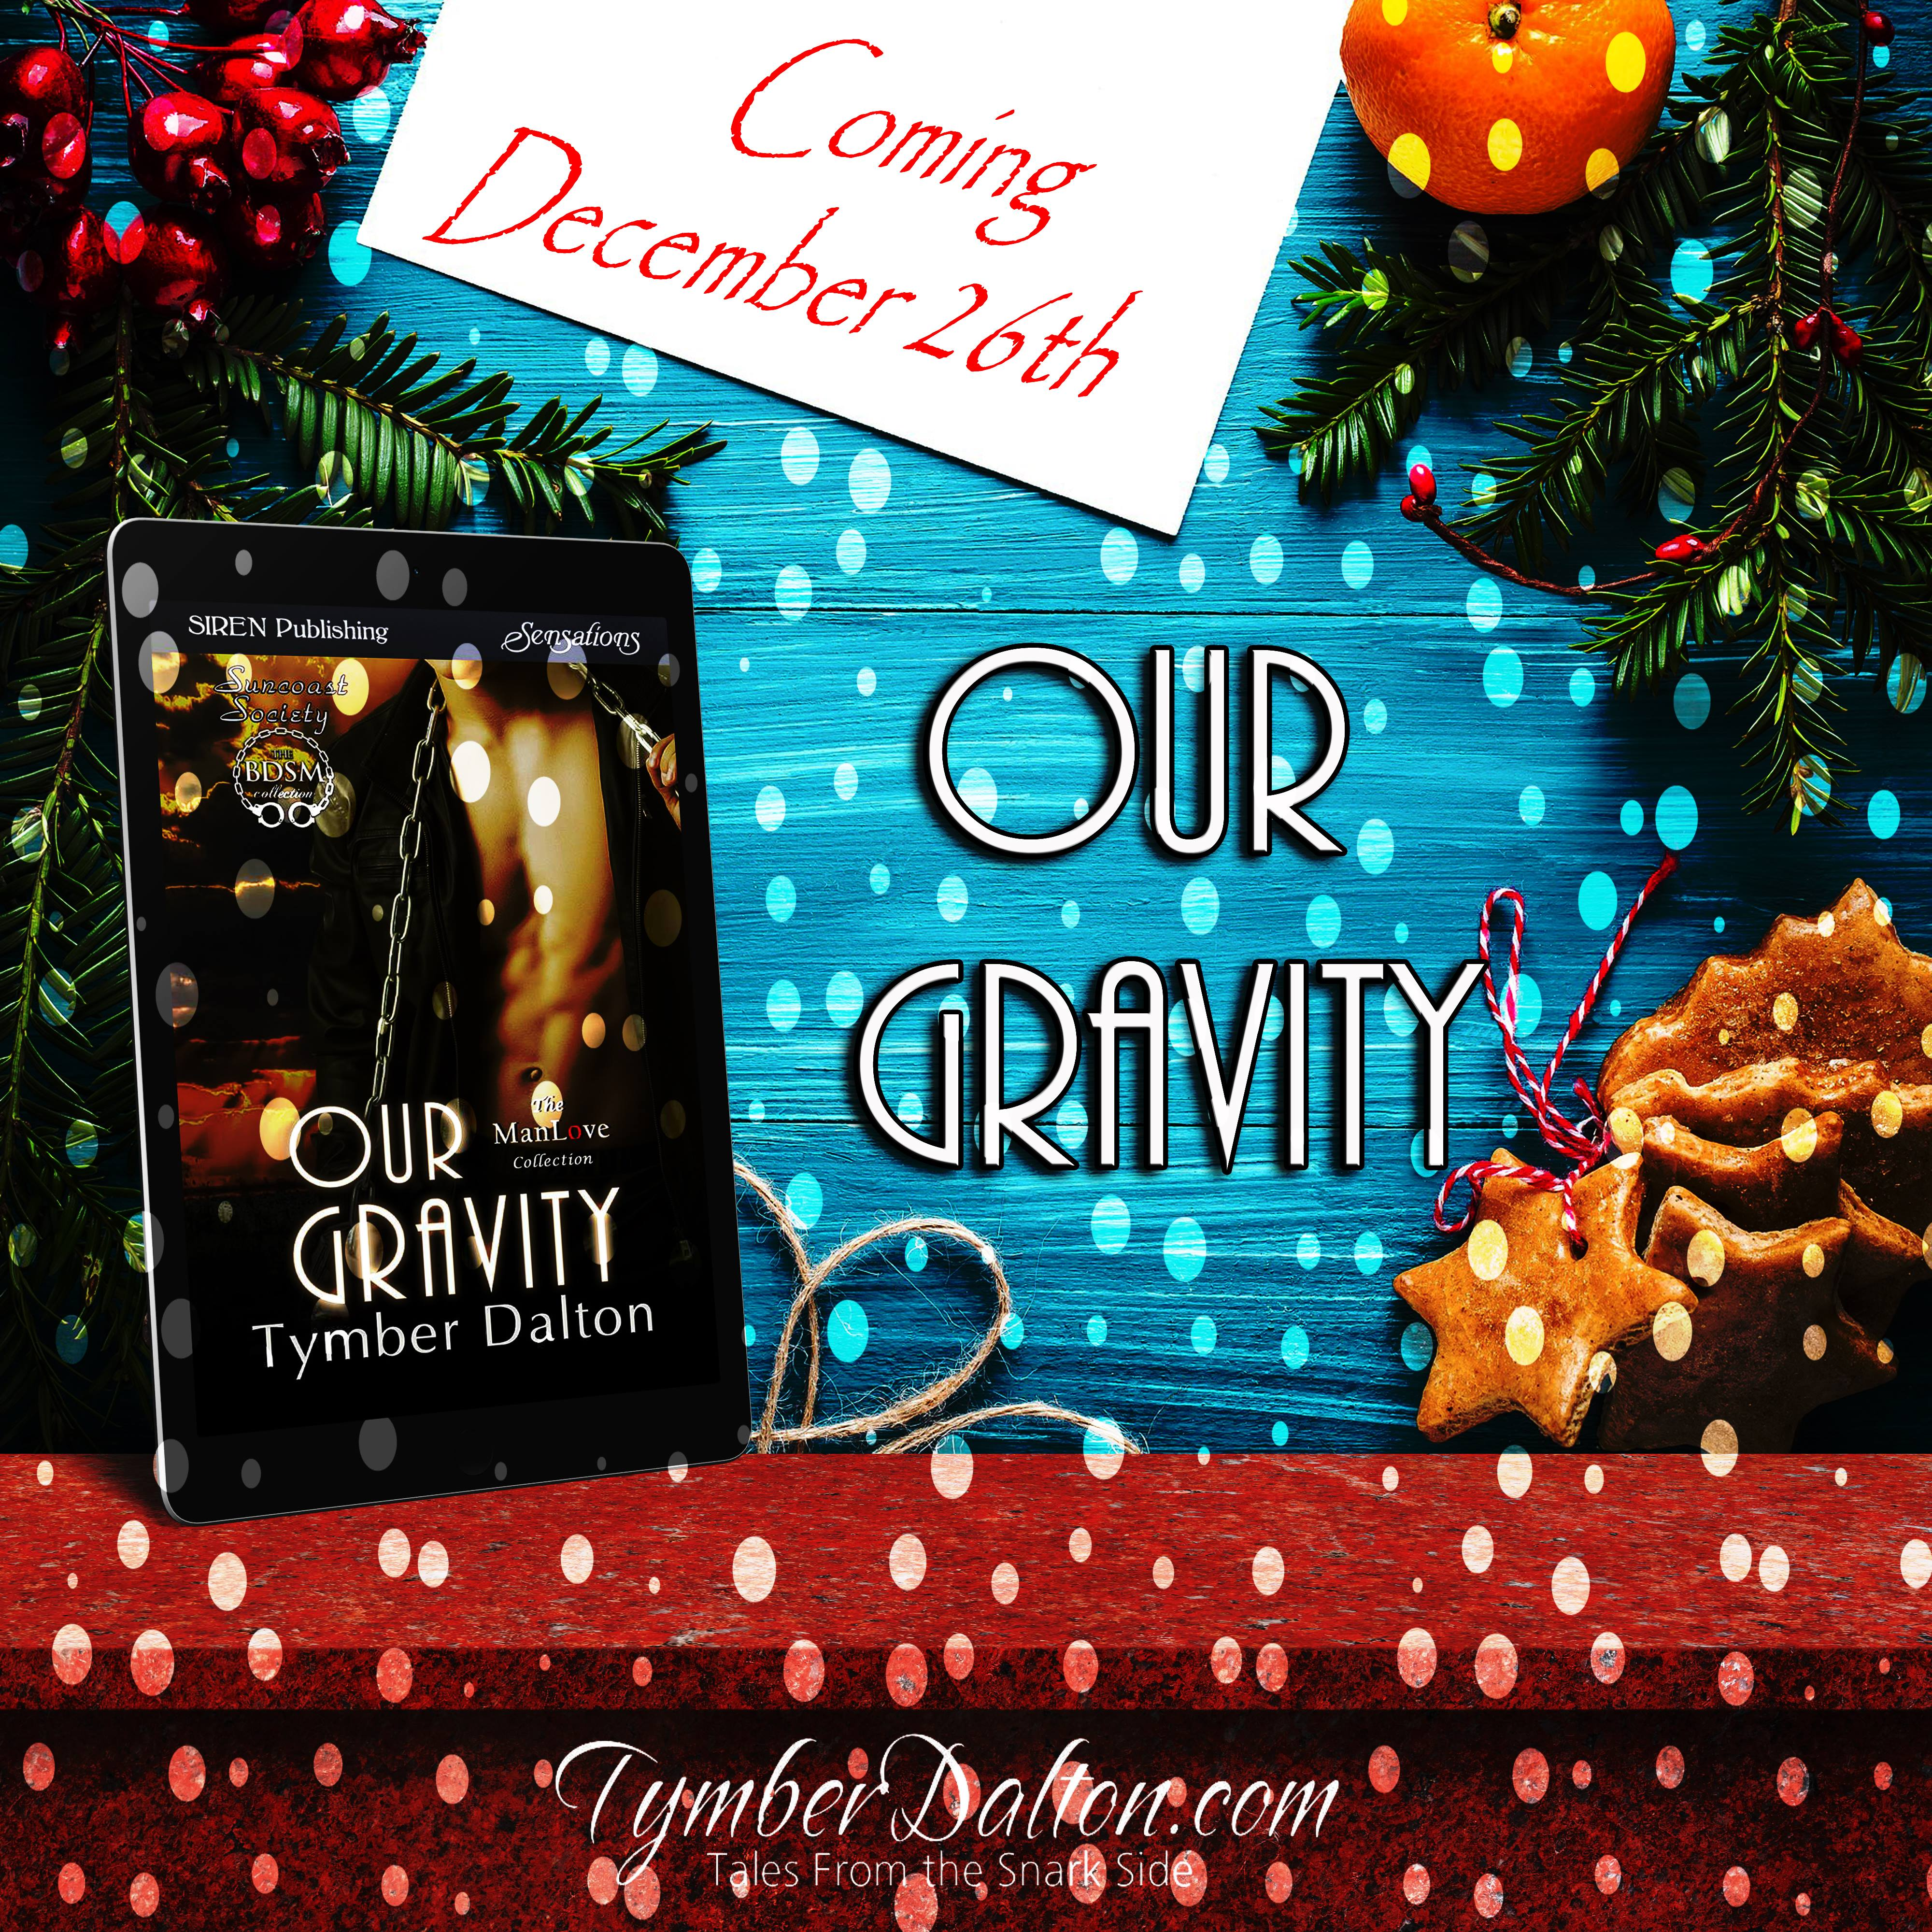 Available for pre-order: Our Gravity (Suncoast Society)